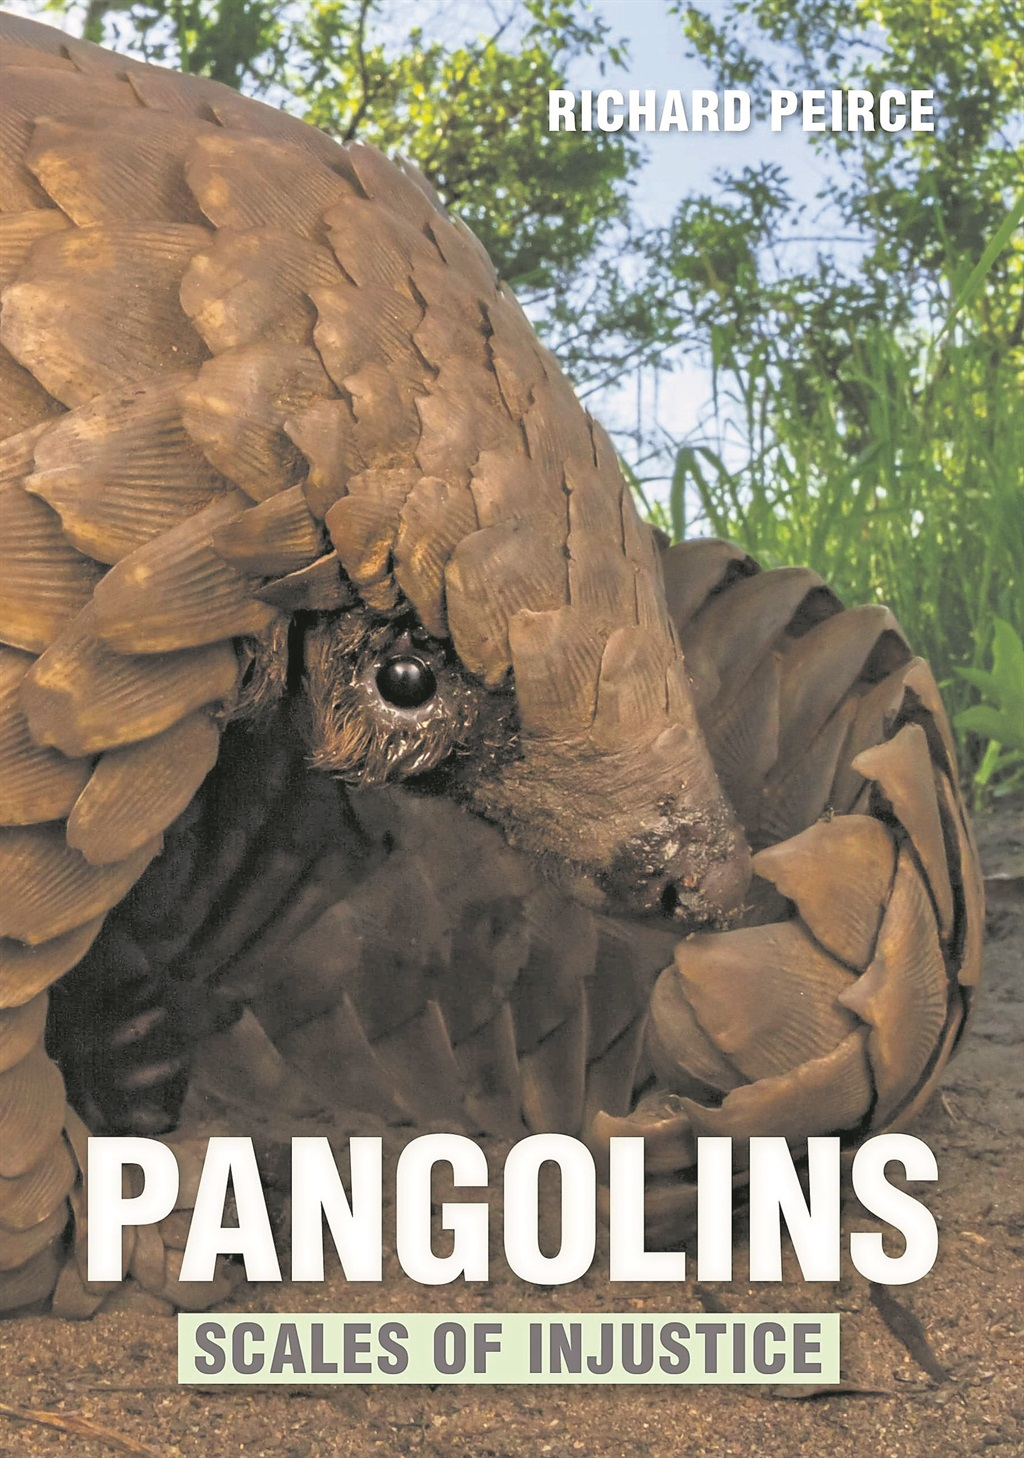 Pangolins: Scales of Injustice